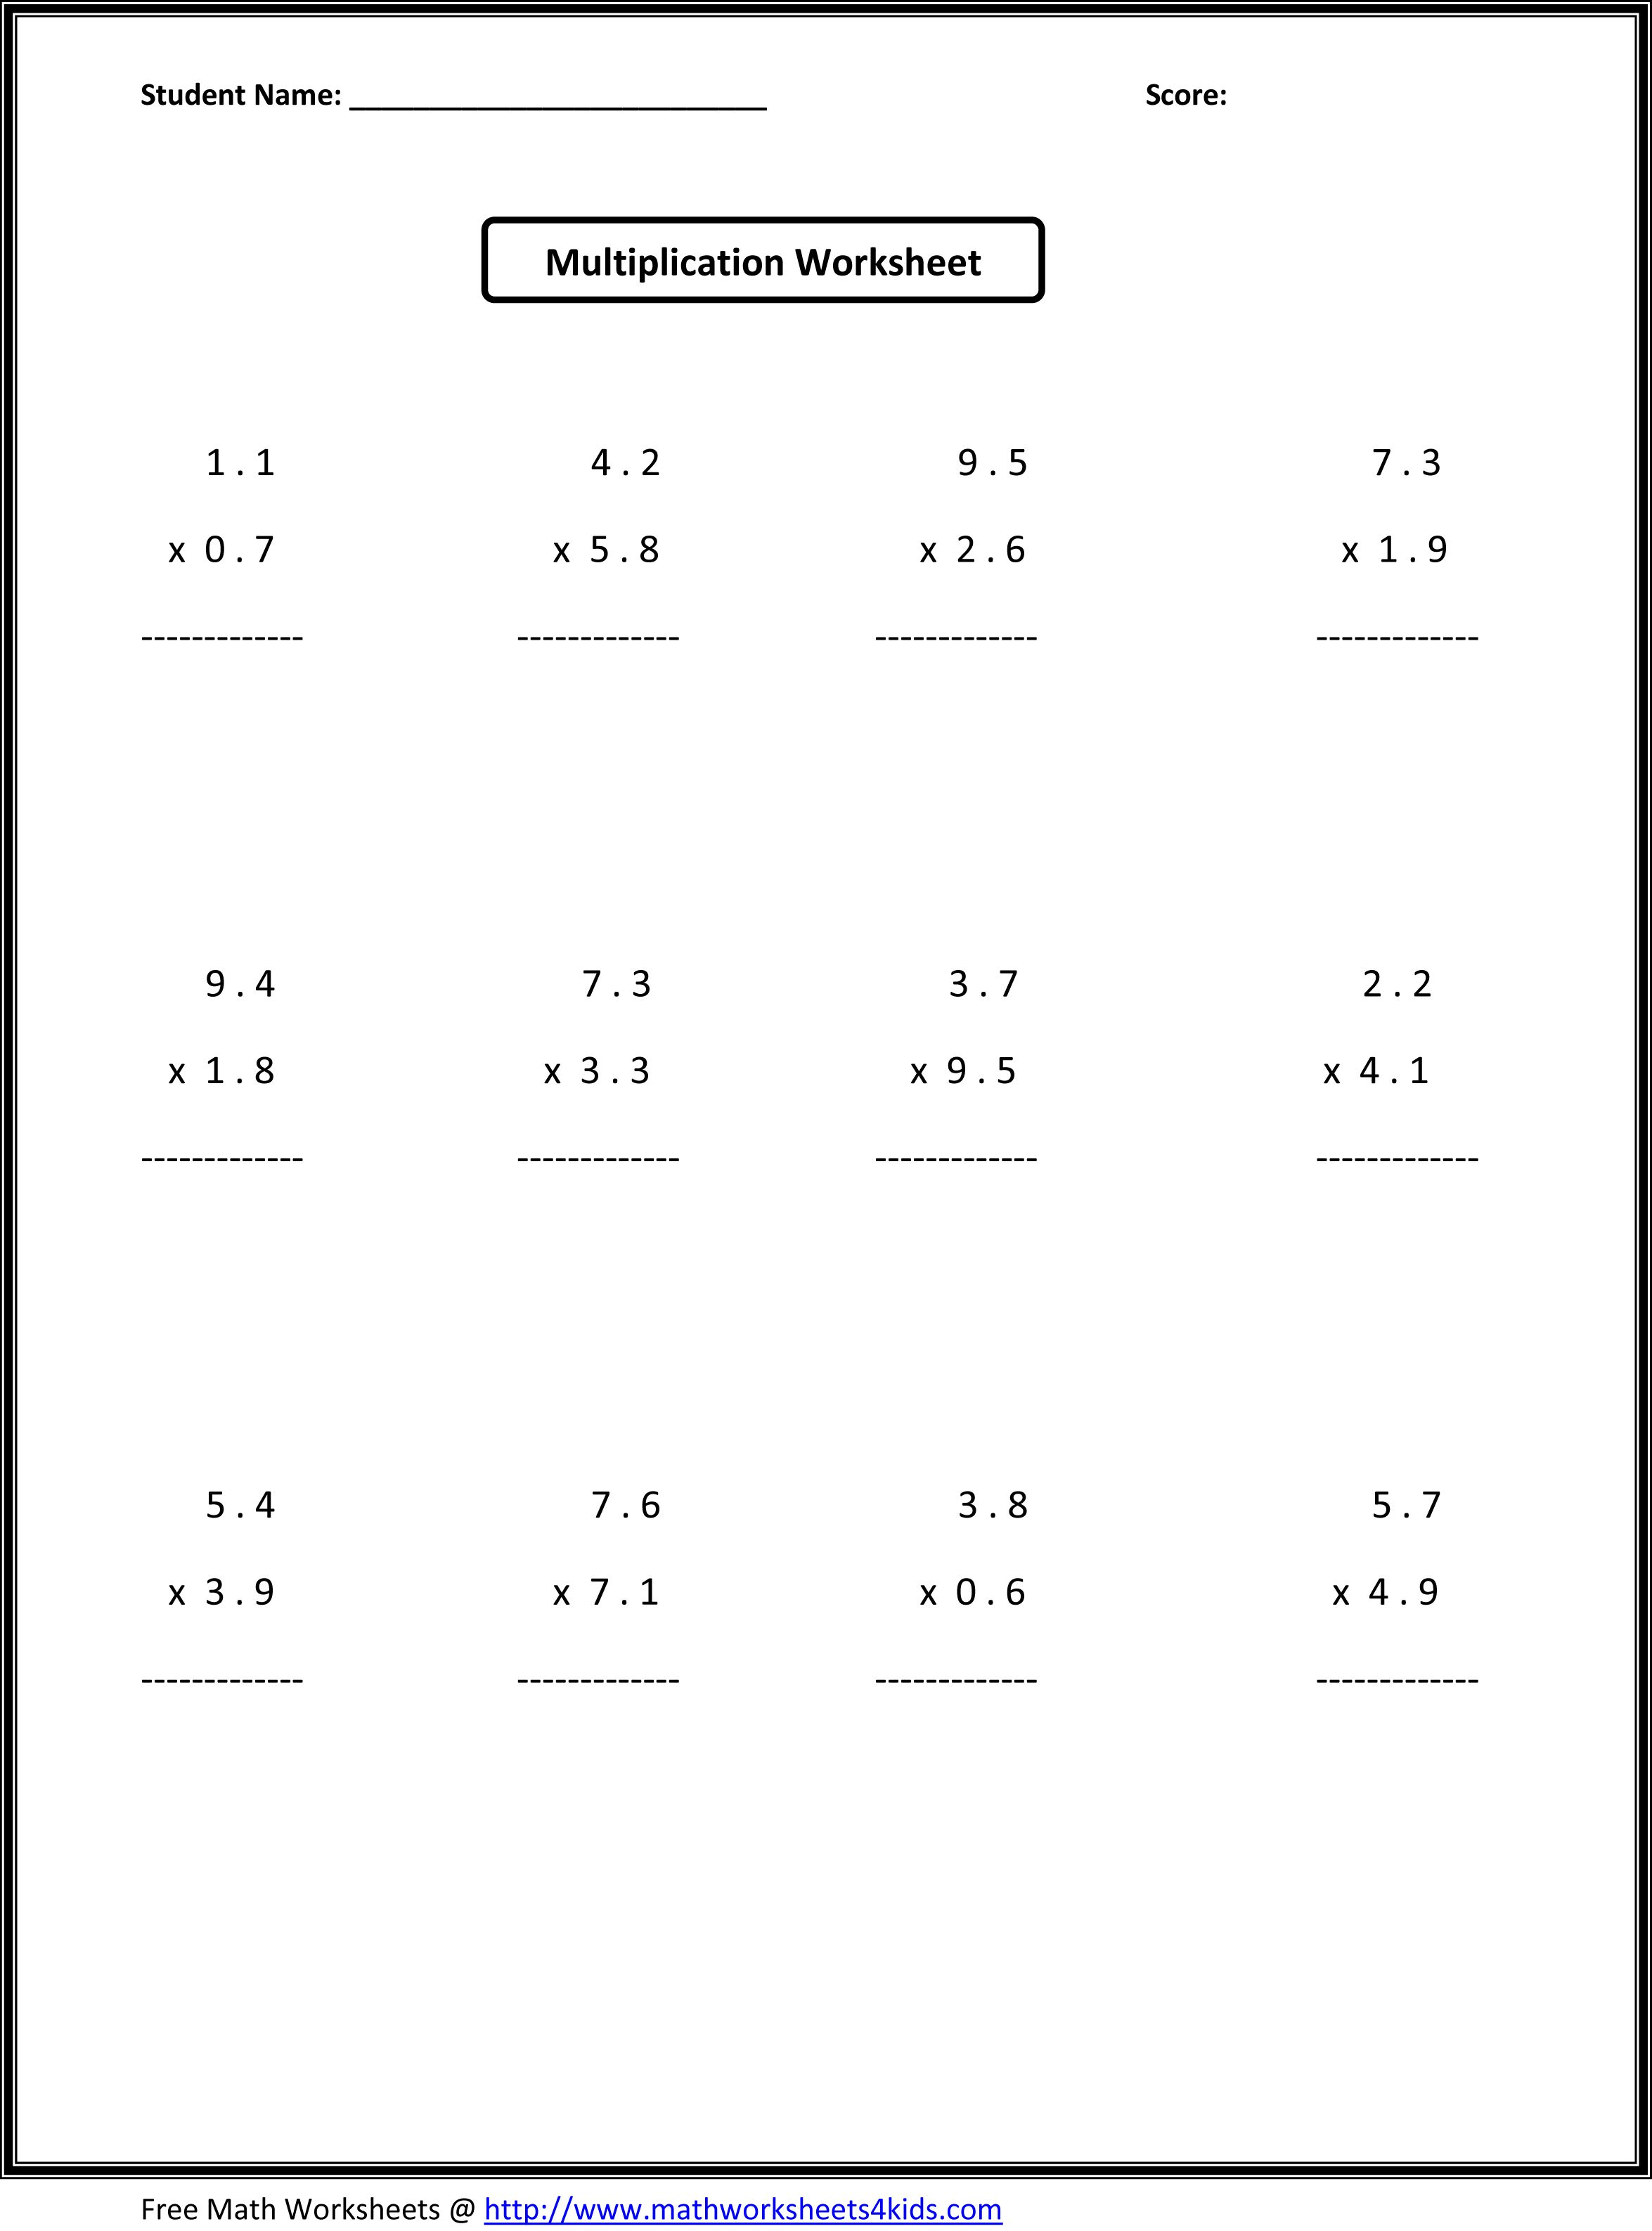 Grade 6 Math Yourhelpfulelf – Grade 6 Math Review Worksheets